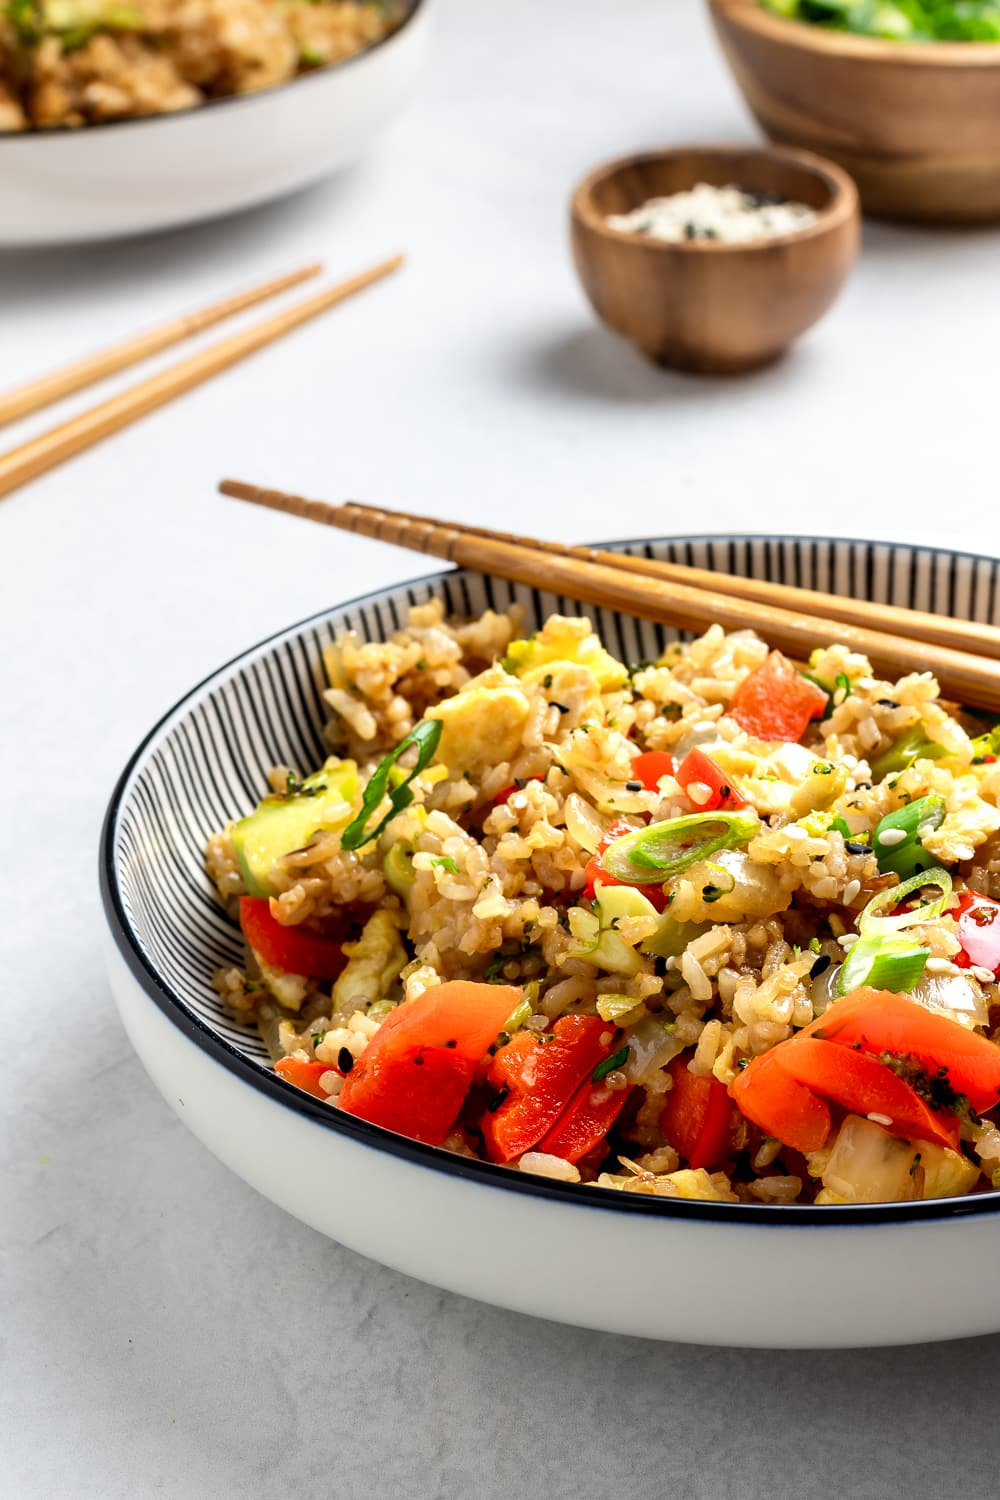 veggie fried rice in a striped bowl with chopsticks